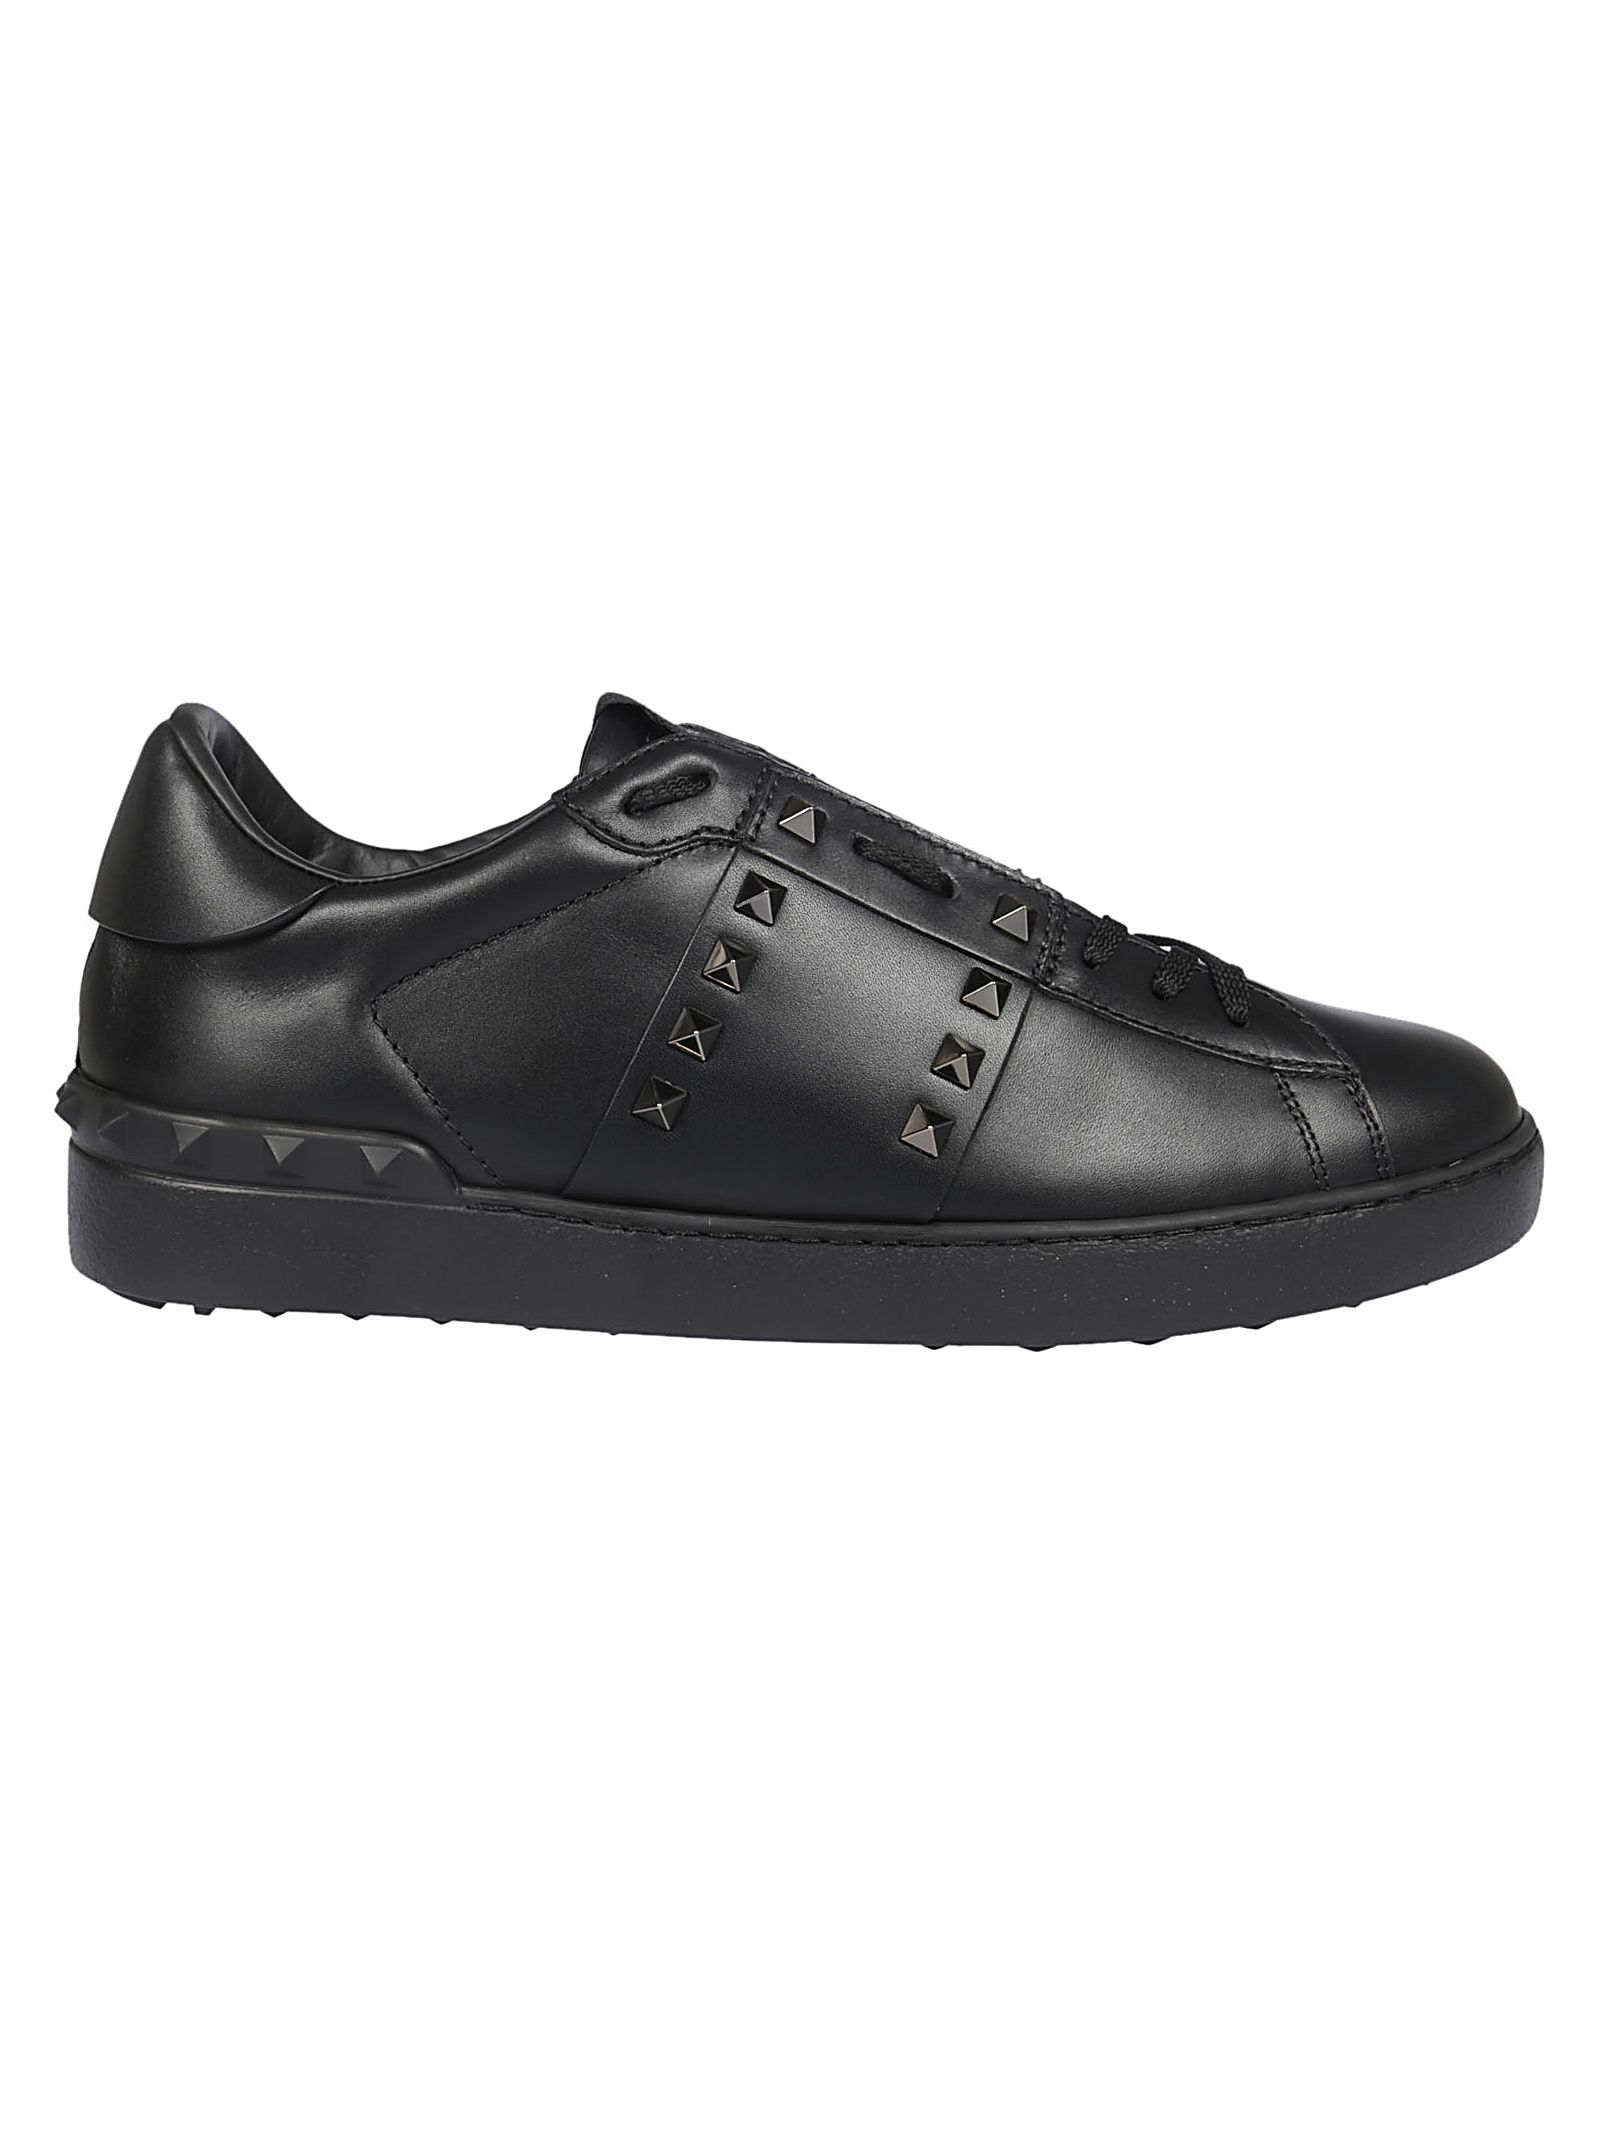 669d7ad7a8f2 Valentino Rockstud Untitled Men s Leather Low-Top Sneaker